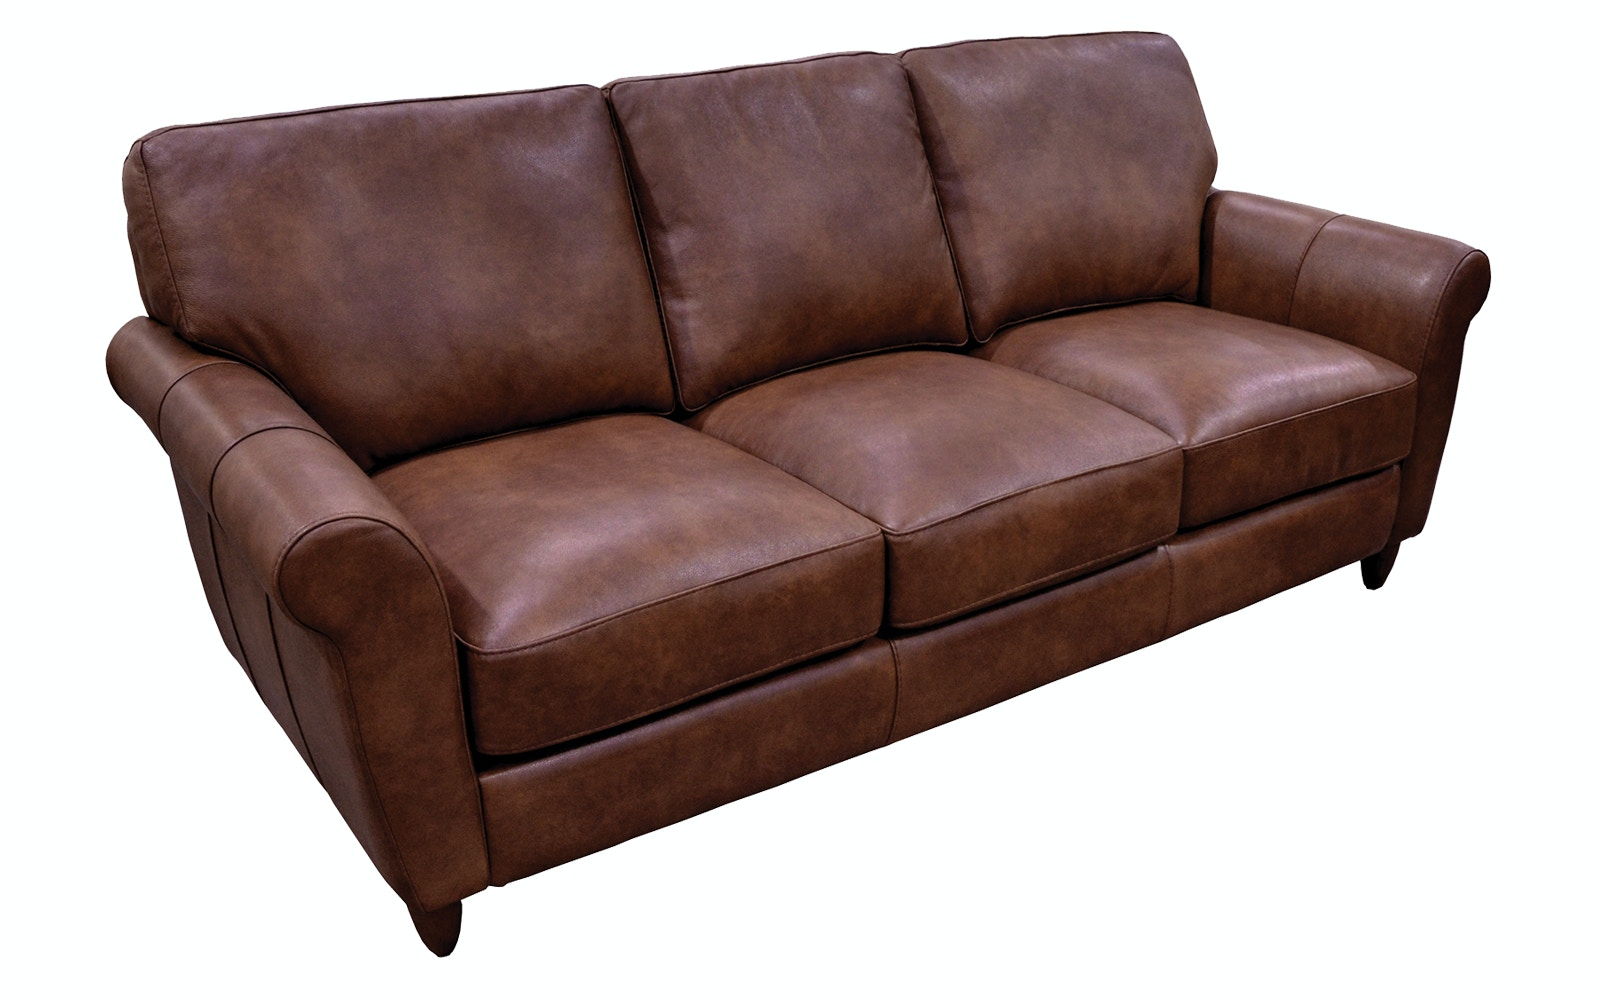 Omnia Leather Cameo Leather Sofa Cameo 3C Sofa 13001